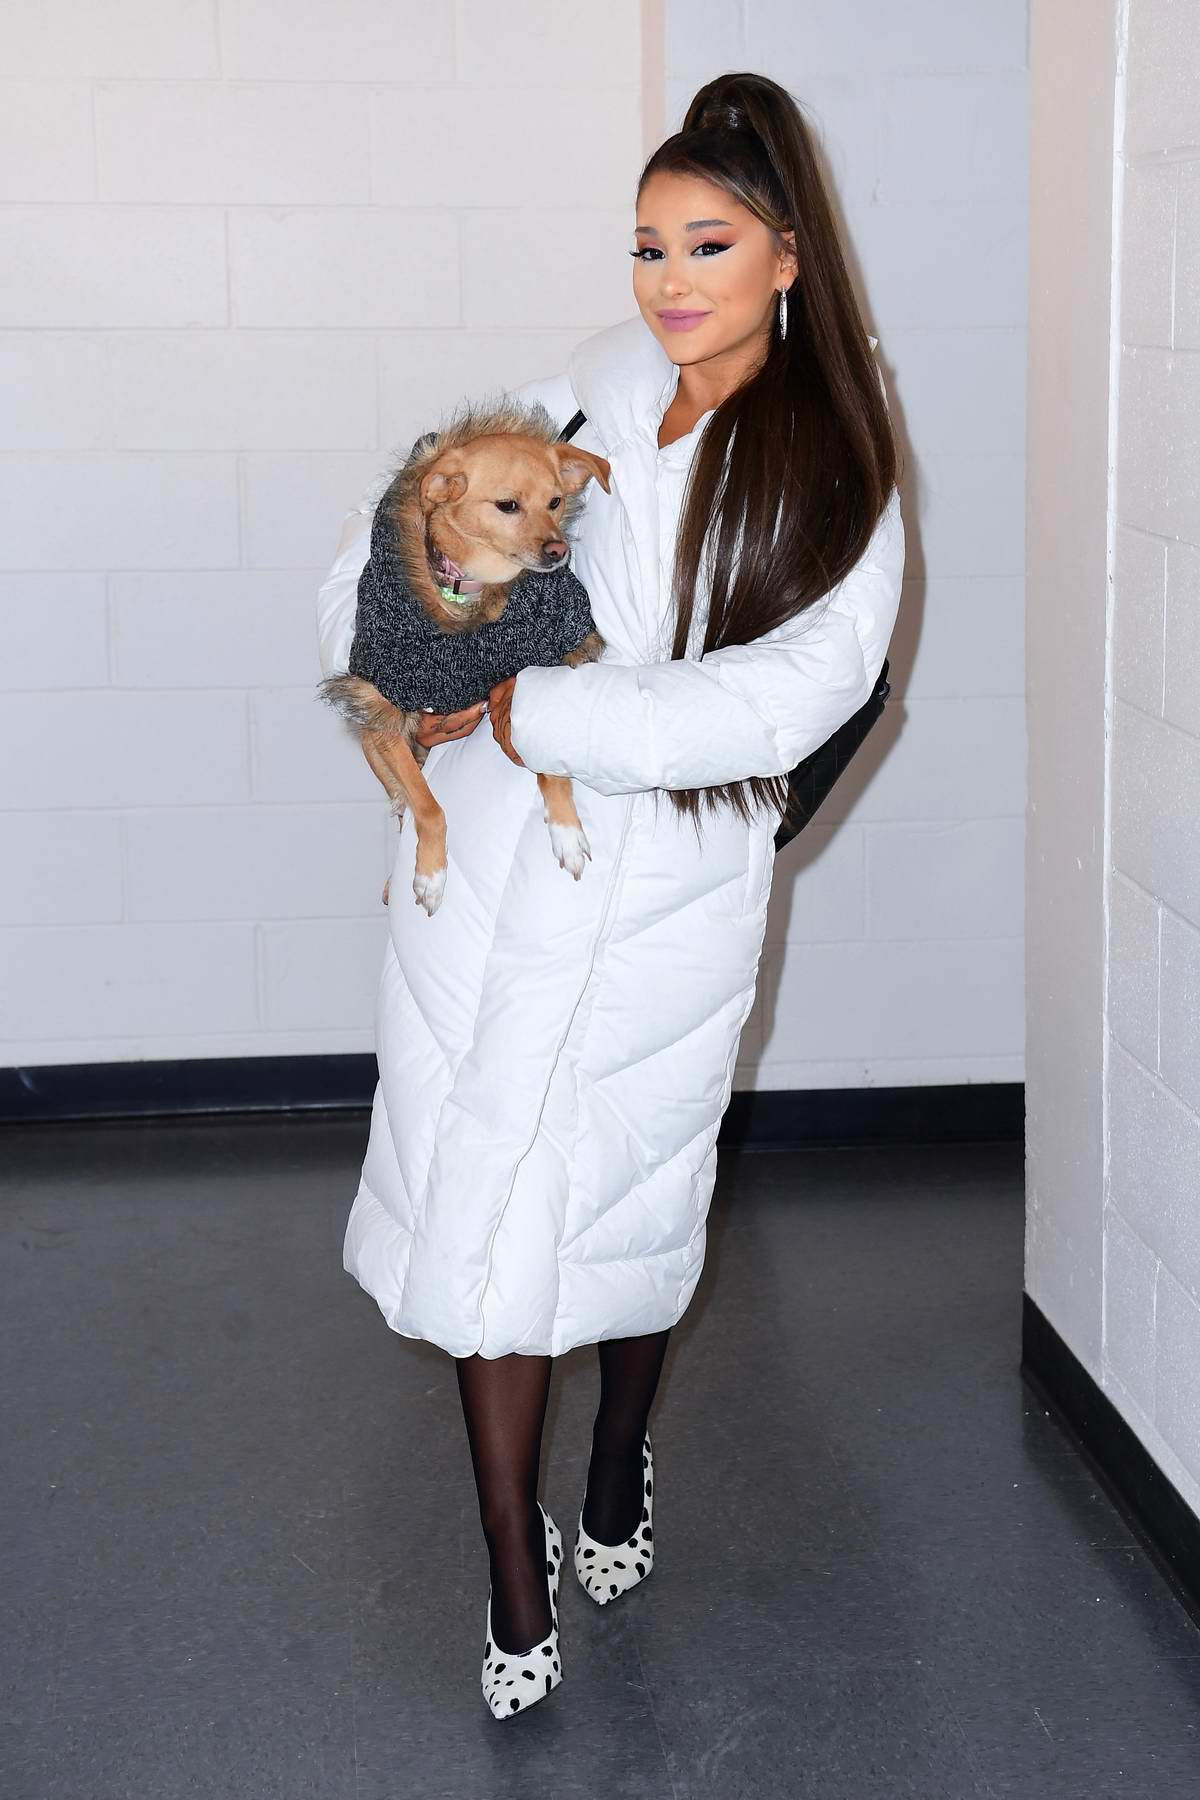 Ariana Grande seen backstage at her Sweetener World Tour Concert in Charlottesville, Virginia